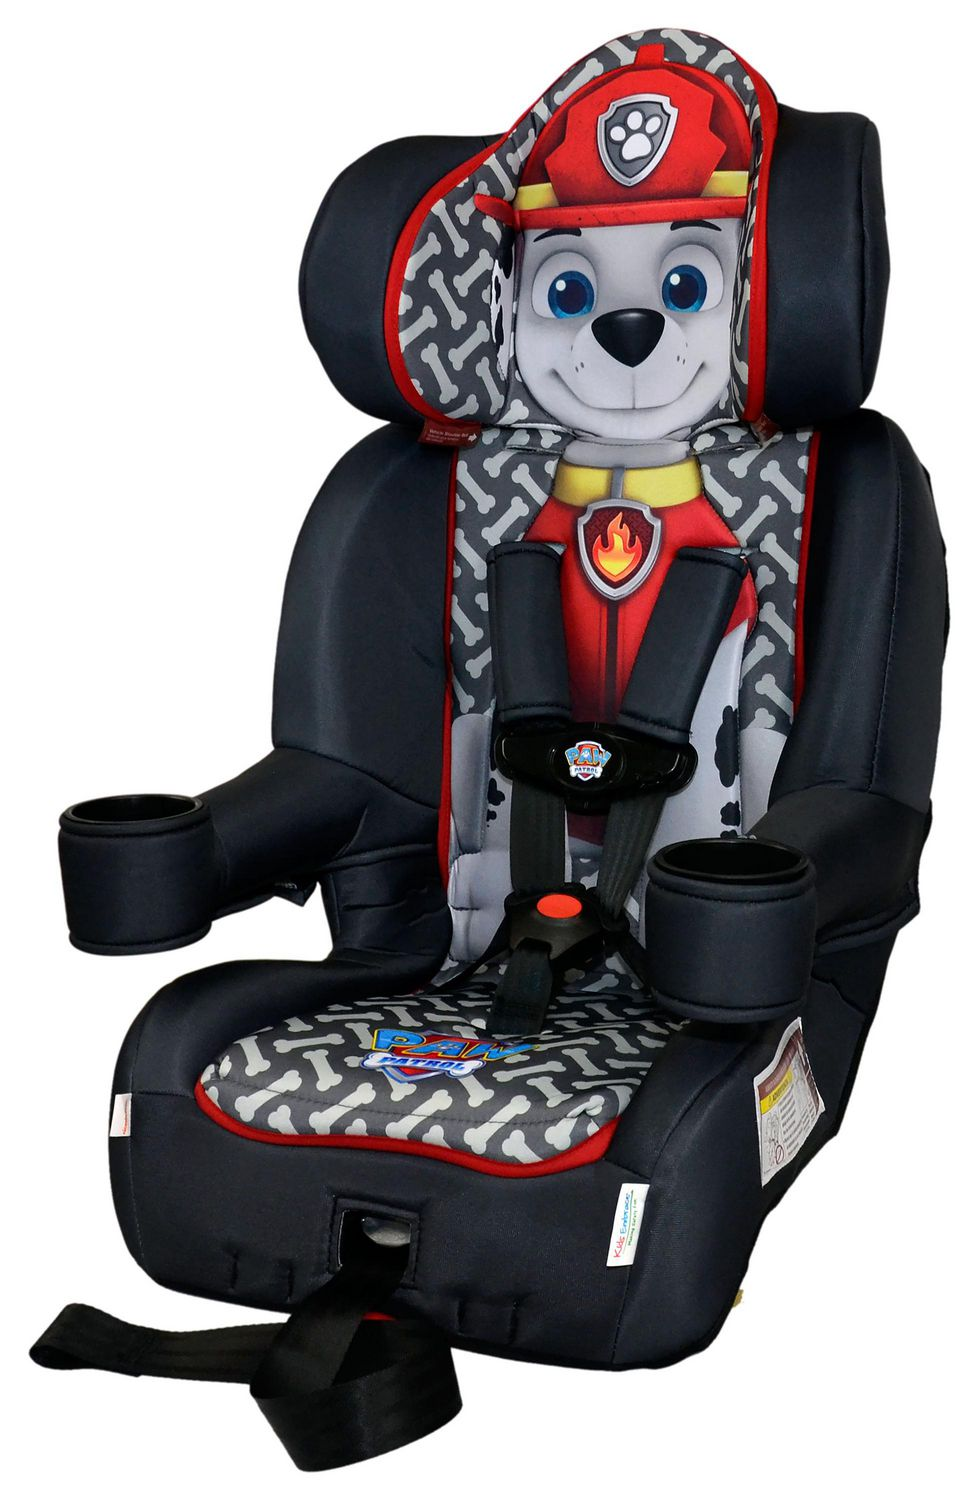 KidsEmbrace Friendship Combination Booster PAW Patrol